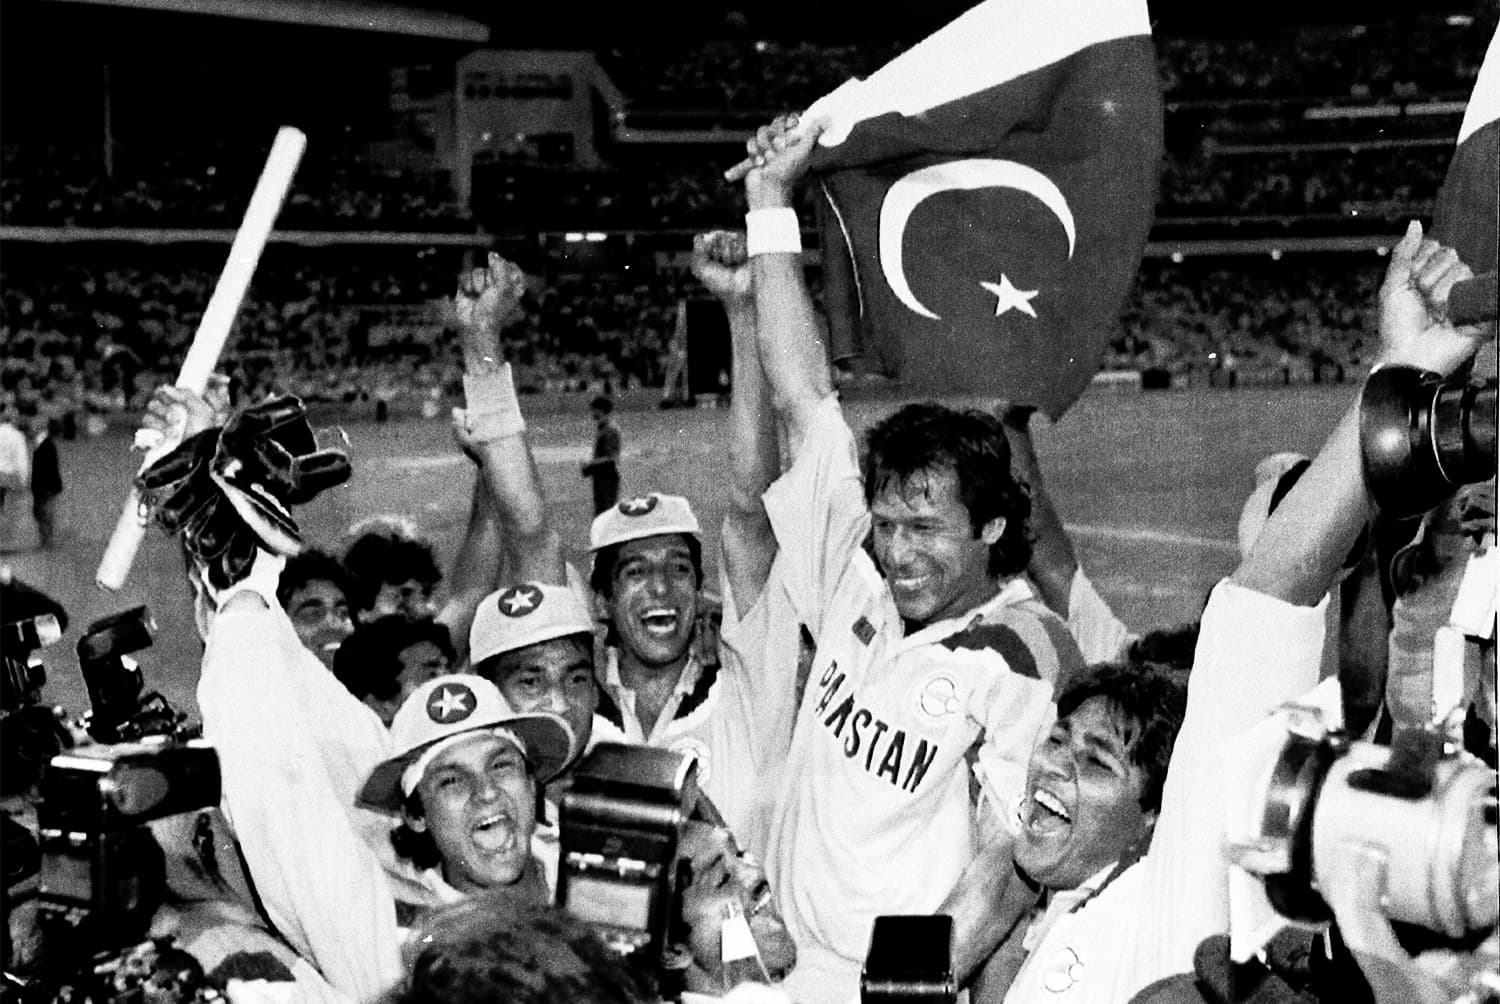 In this March 25, 1992 file photo, Imran Khan waves a Pakistan flag and is chaired by his team mates after Pakistan defeats England in the World Cup Cricket Final in Melbourne, Australia. ─ AP